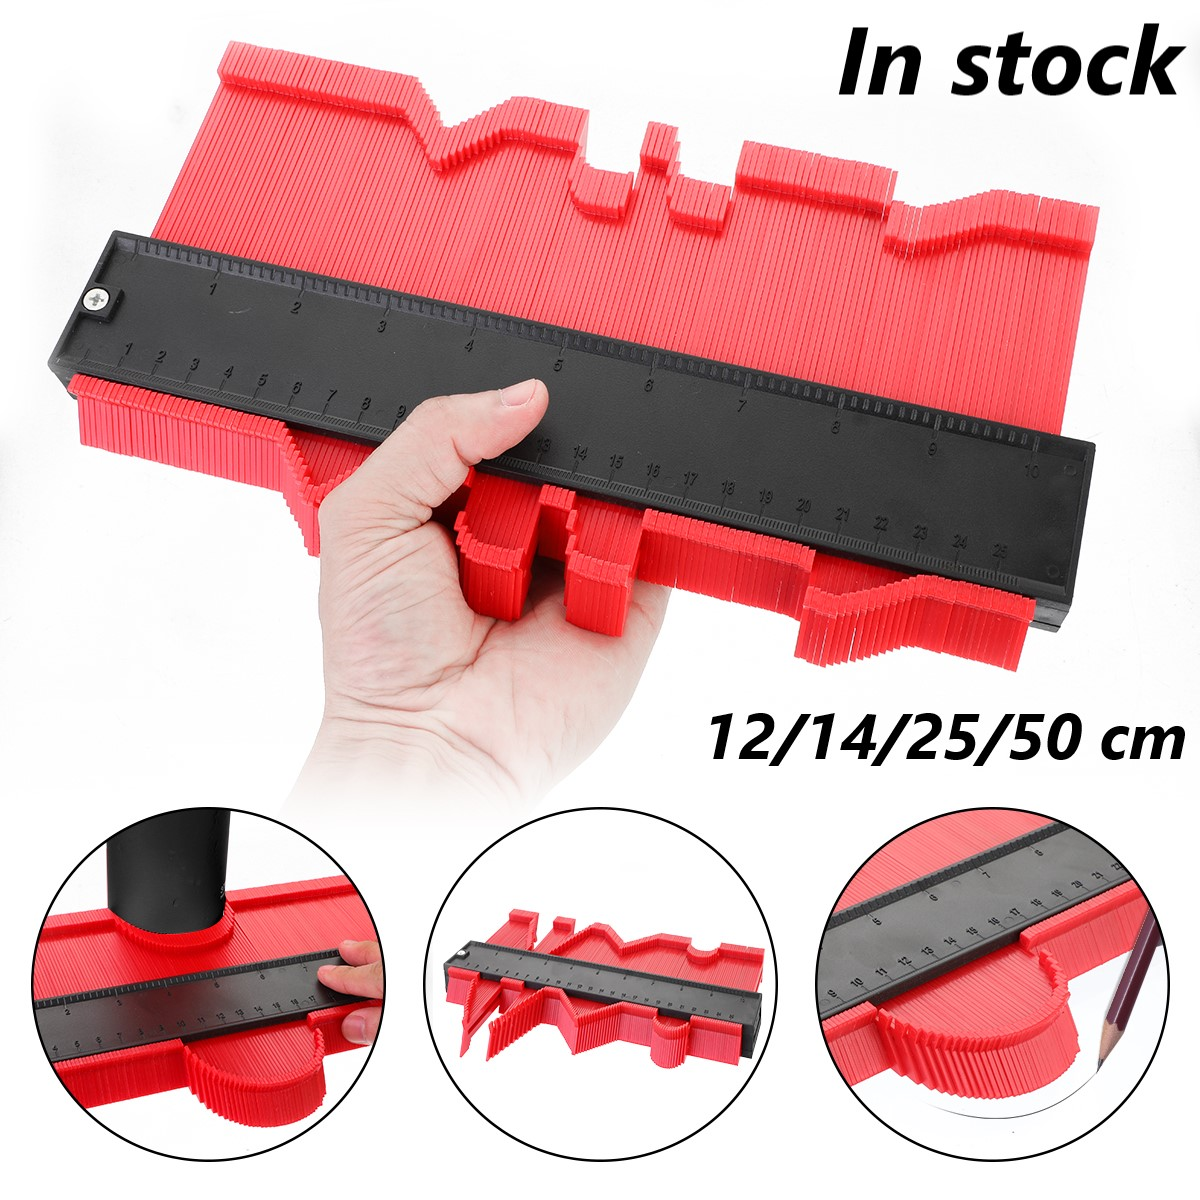 12/14/25/50 Cm Contour Gauge Plastic Profile Copy Contour Gauges Standard Wood Marking Tool Tiling Laminate Tiles Tools